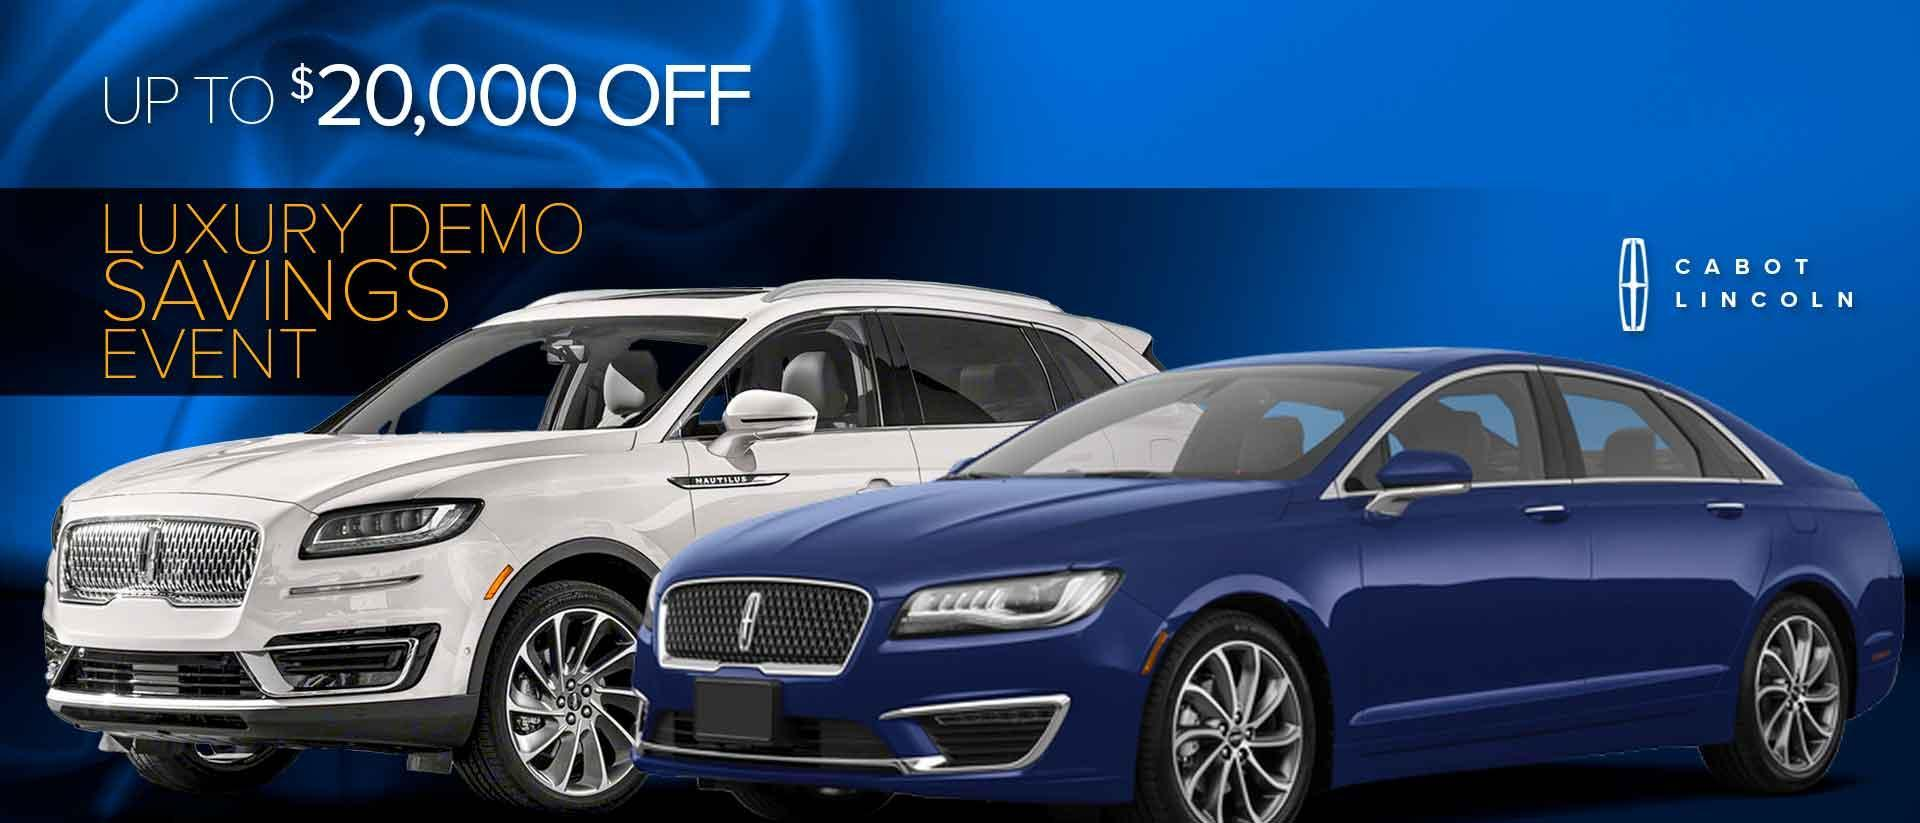 Save up to $20,000 off a very limited number of MKC, MKZ, and Nautilus demo vehicles. Exceptional prices.  Embrace distinction and enjoy luxury for less. (709) 722-6600. 177 Kenmount Road.